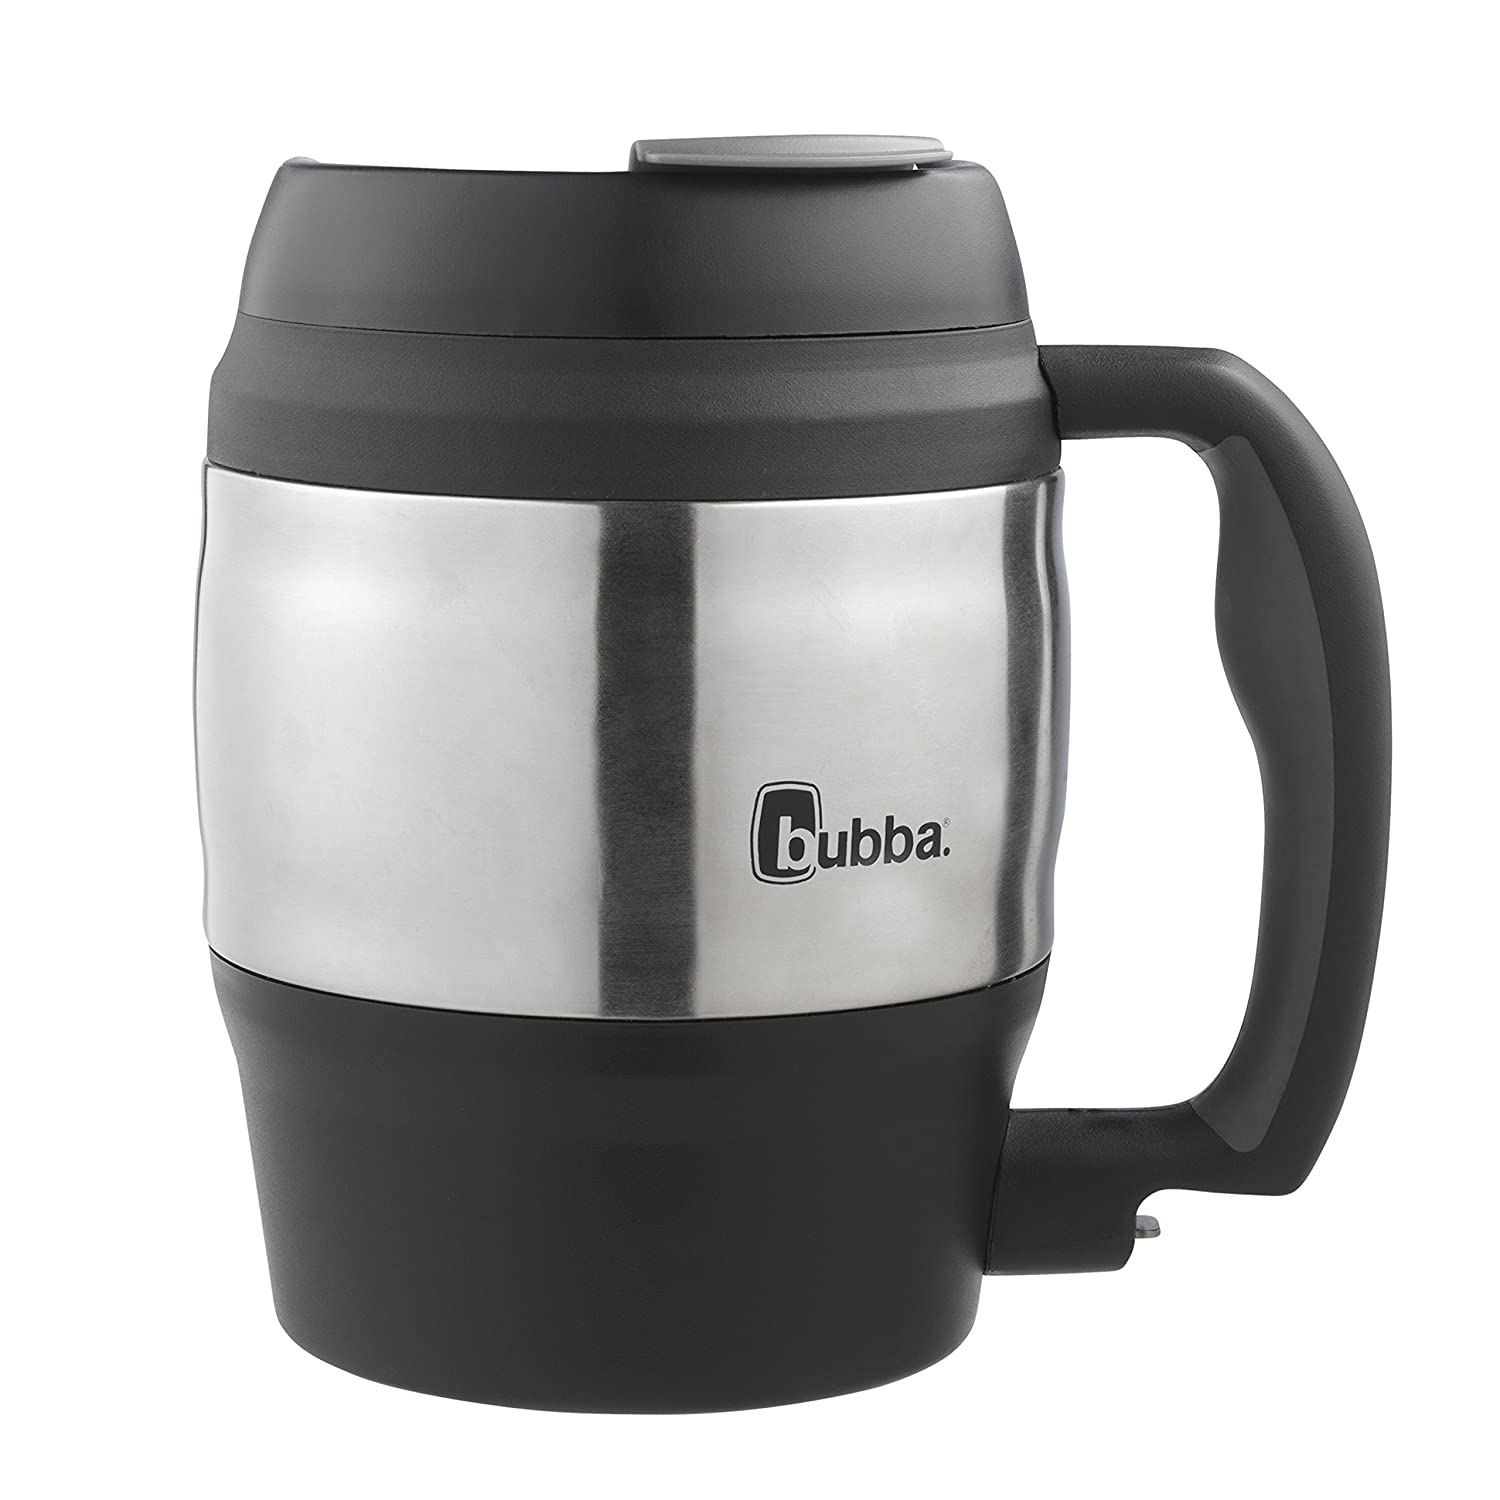 Bubba Classic Insulated Mug, 52oz